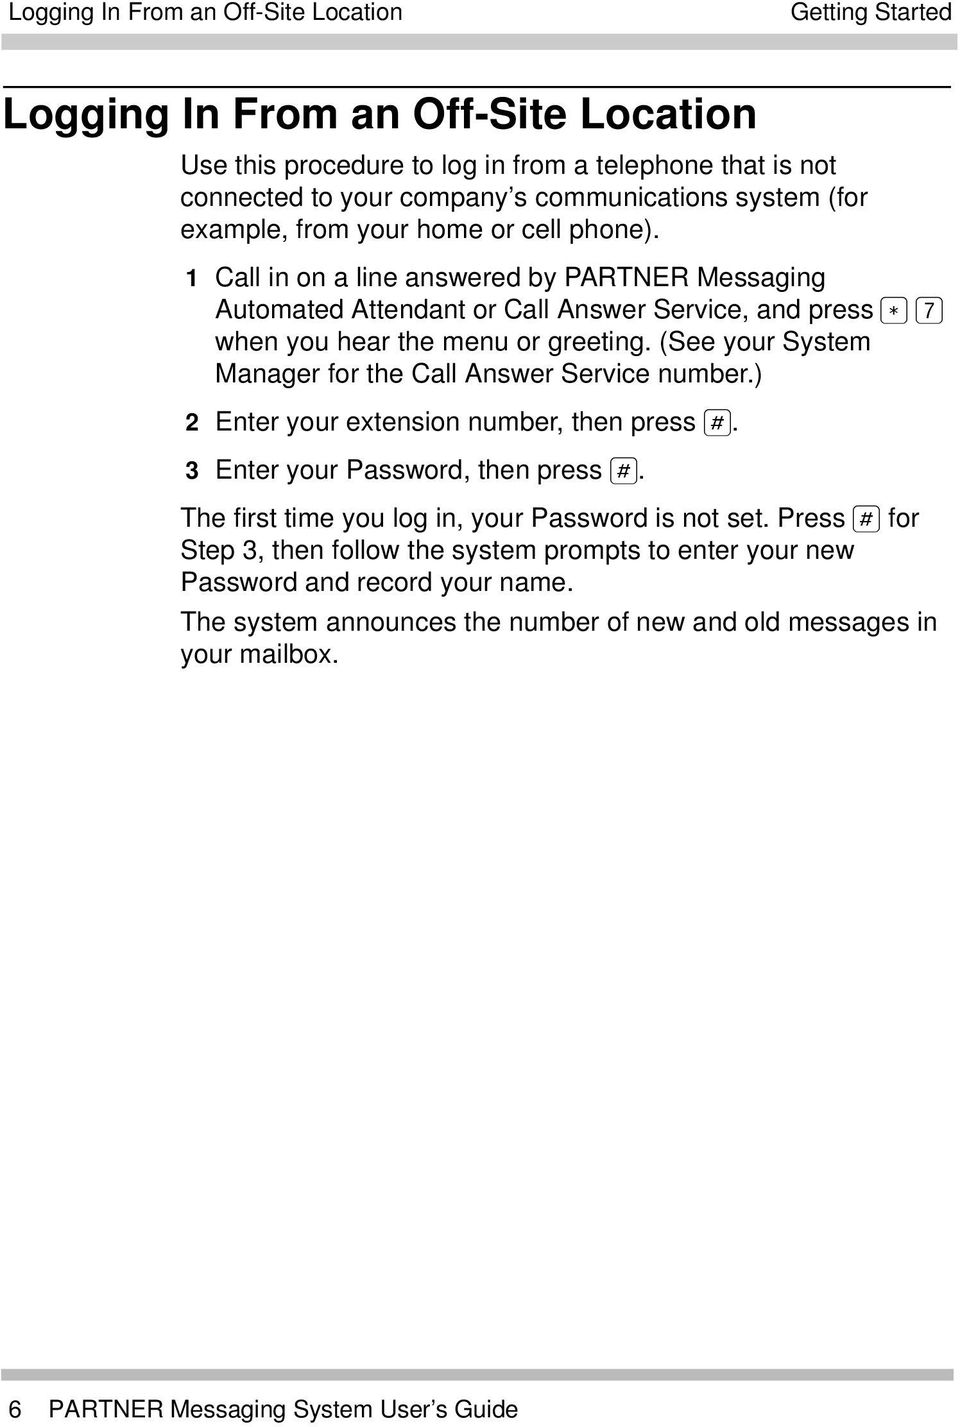 (See your System Manager for the Call Answer Service number.) 2 Enter your extension number, then press 6. 3 Enter your Password, then press 6. The first time you log in, your Password is not set.